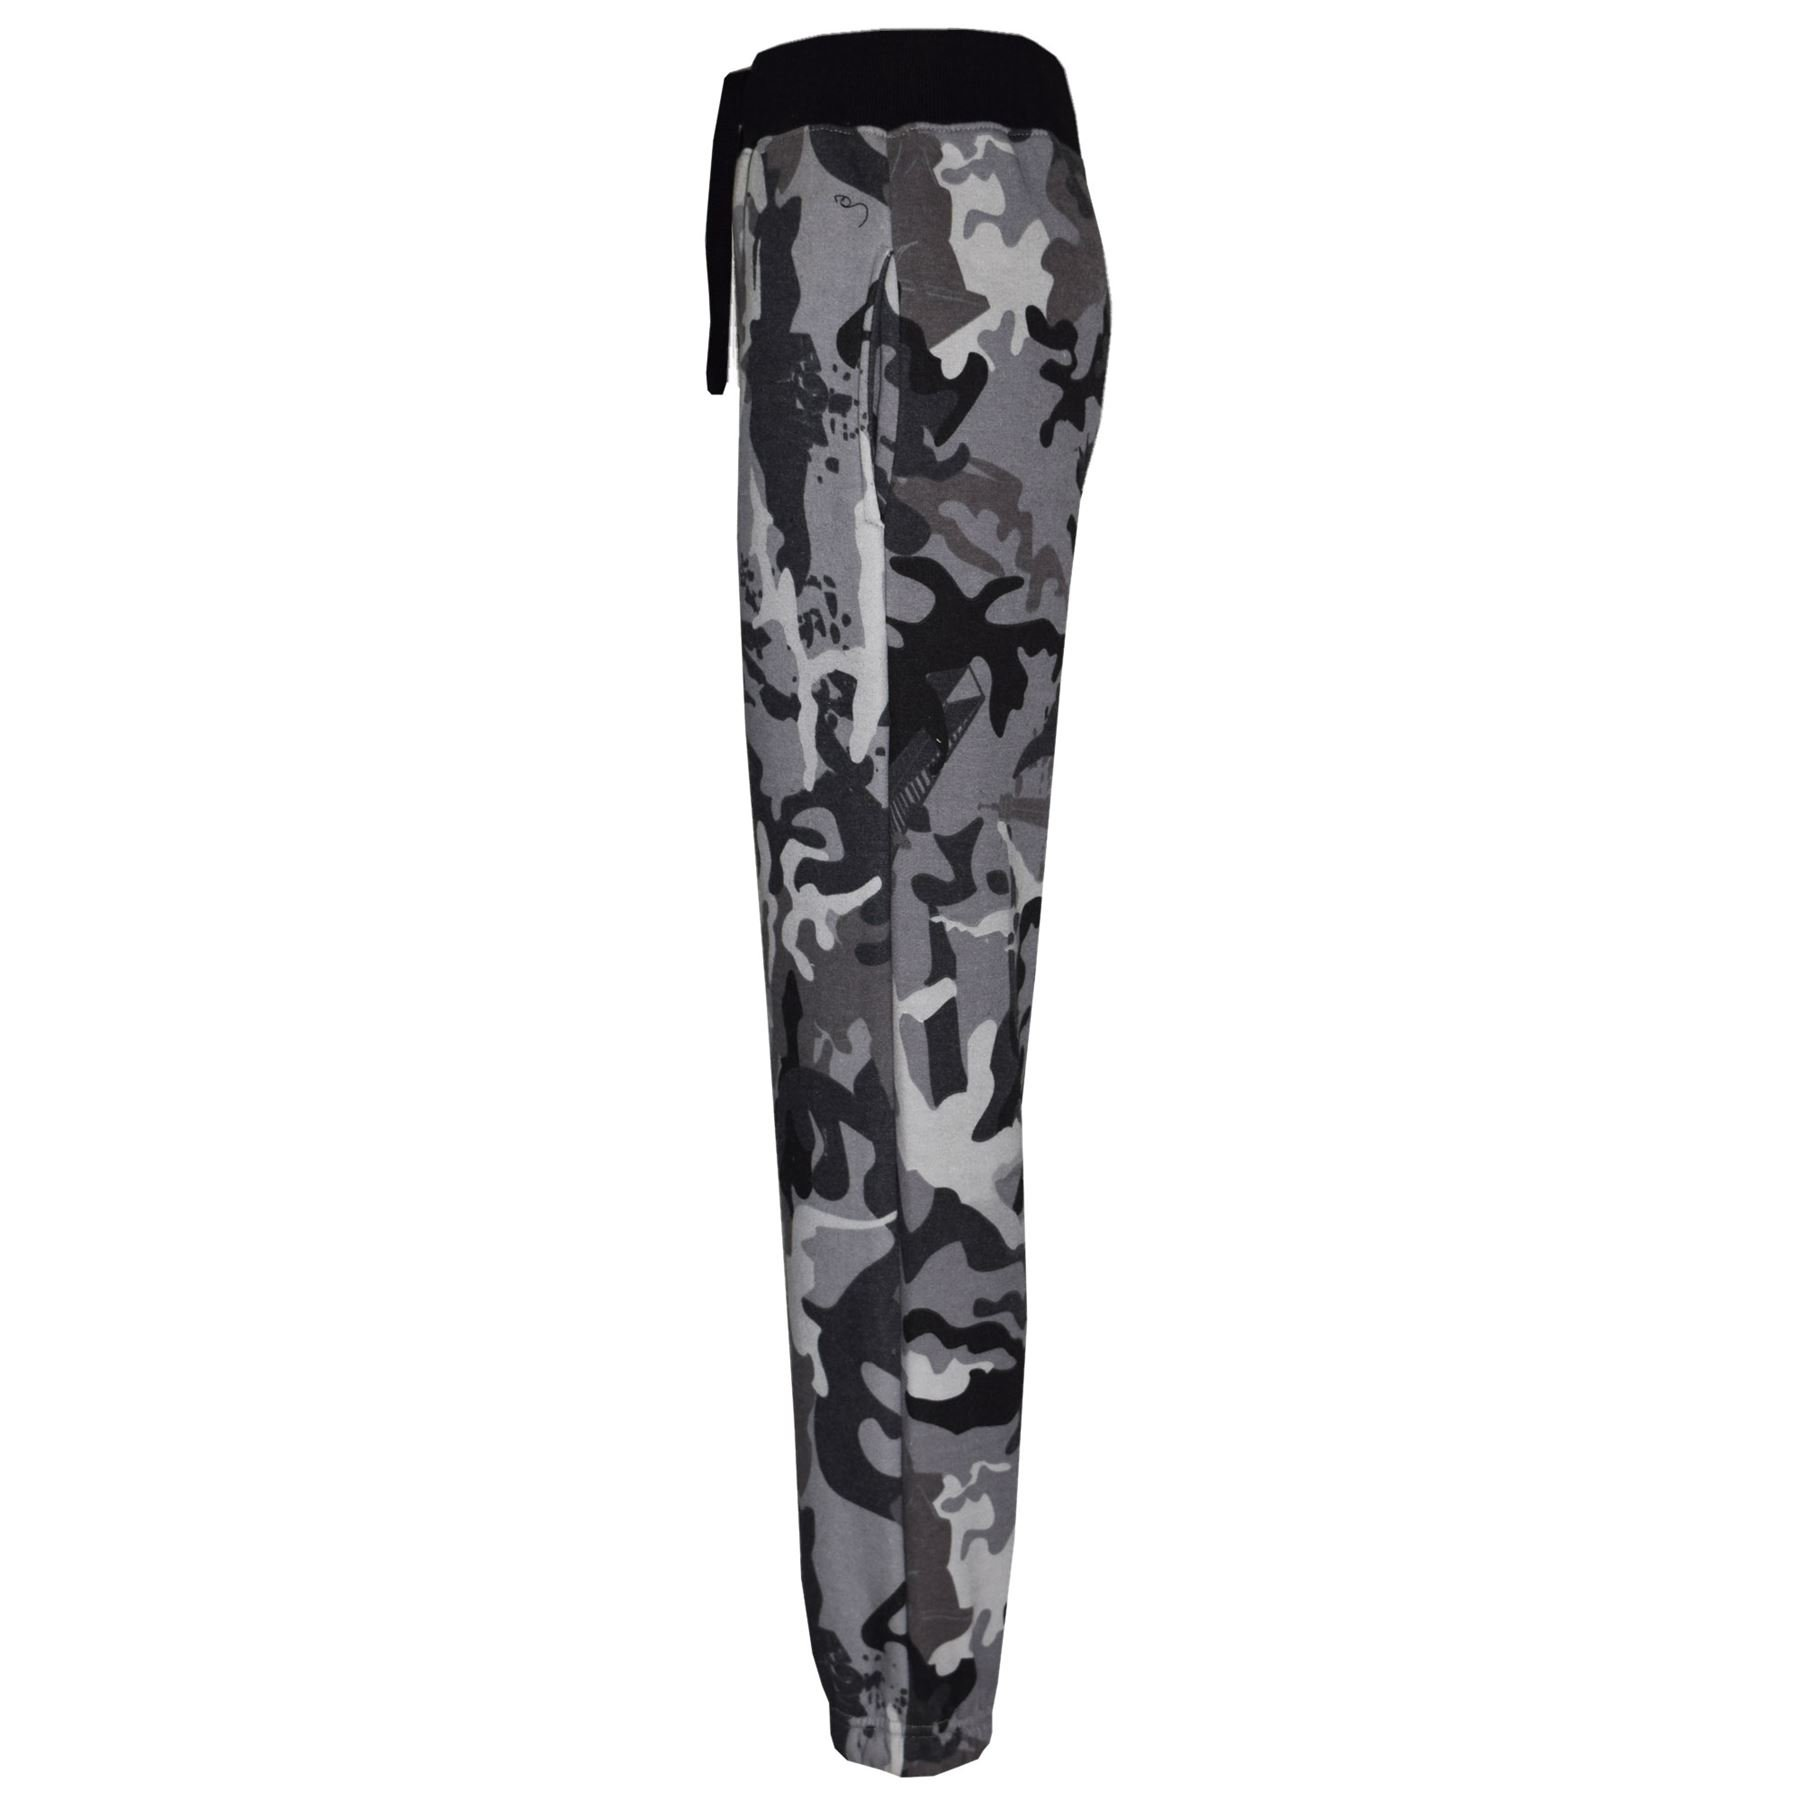 A2Z 4 Kids® Kids Boys Girls Camouflage Joggers Jogging Pants Trackie Bottom Casual Trousers by A2Z 4 Kids® (Image #3)